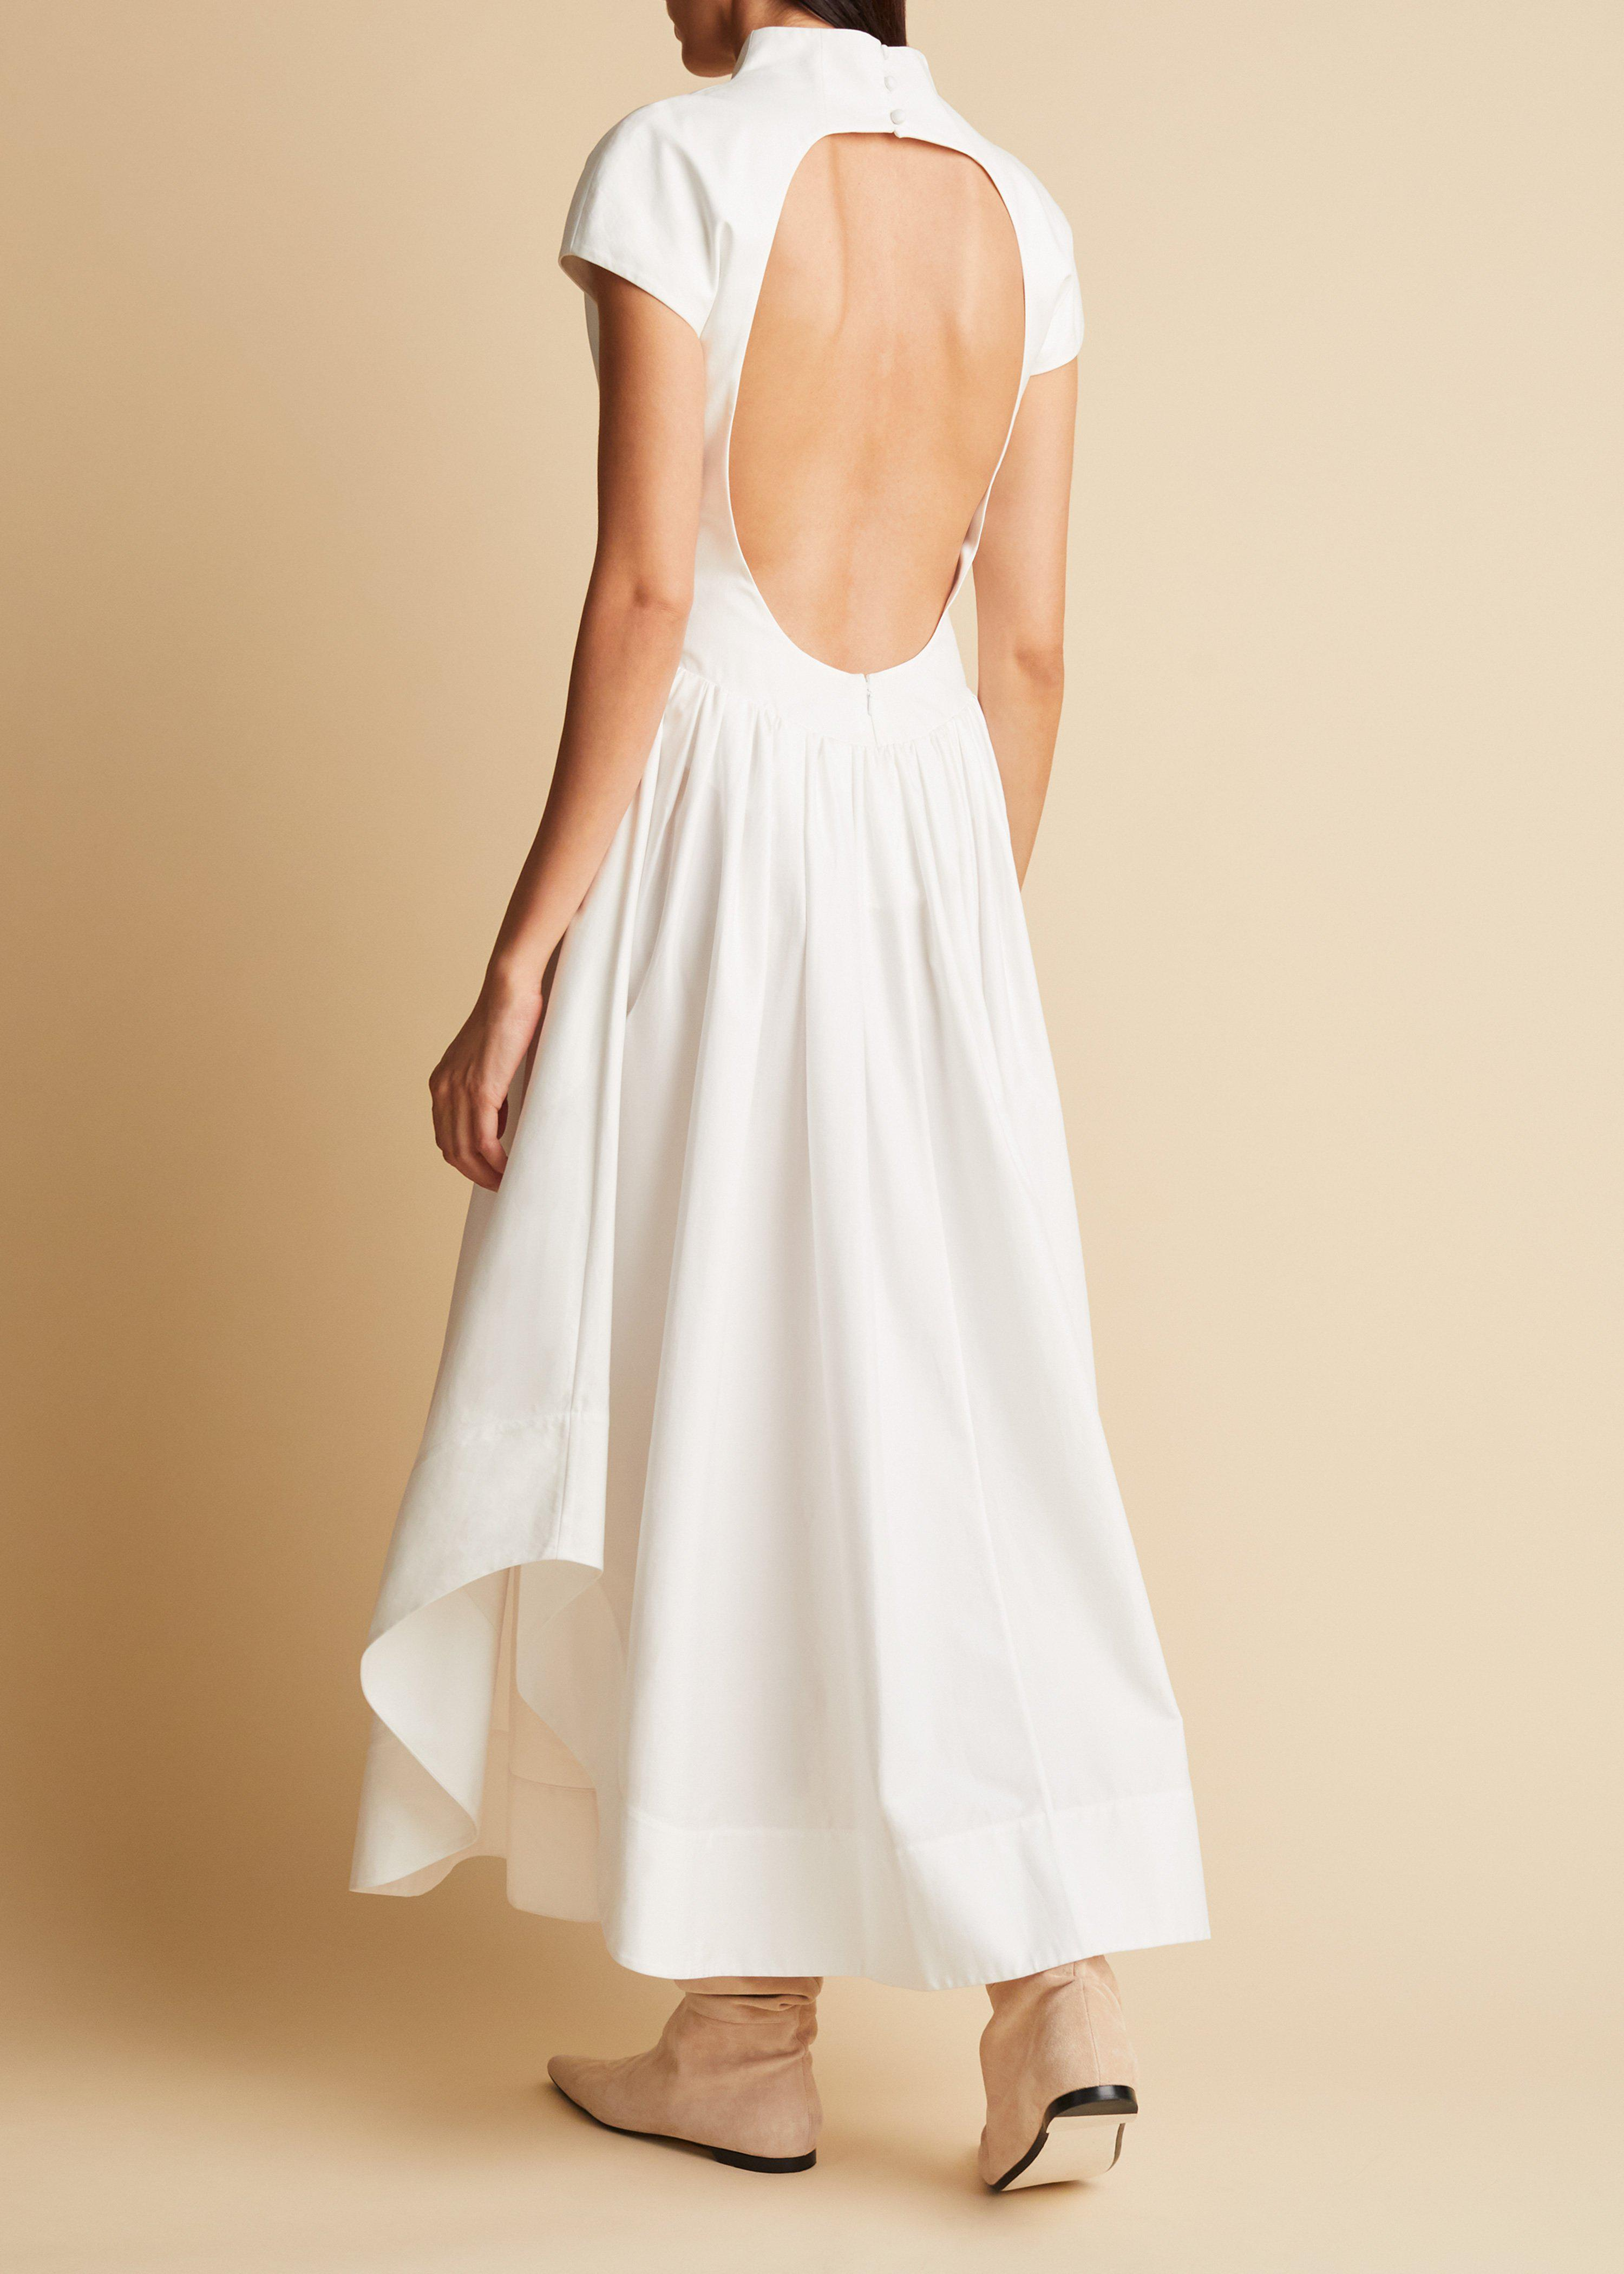 The Lenore Dress in White